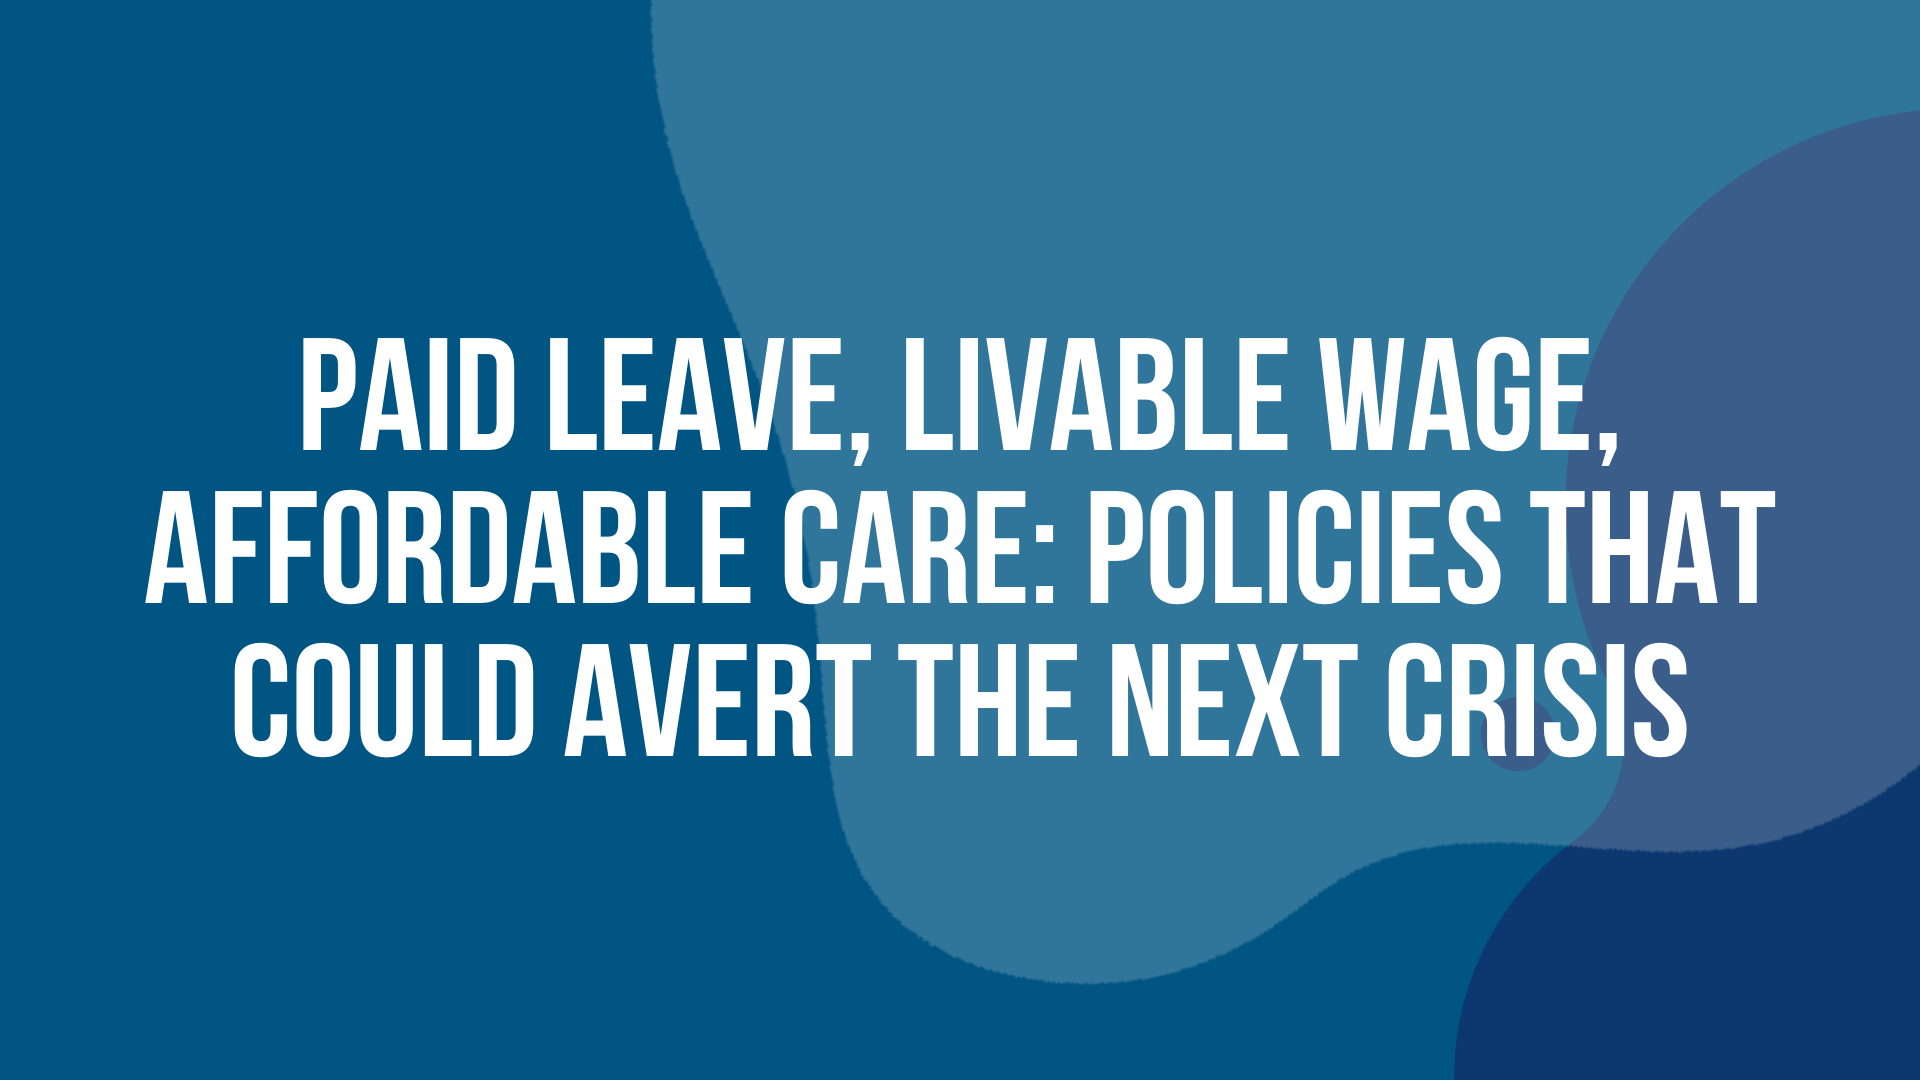 Paid Leave, Livable Wage, Affordable Care: Policies that Could Avert the Next Crisis